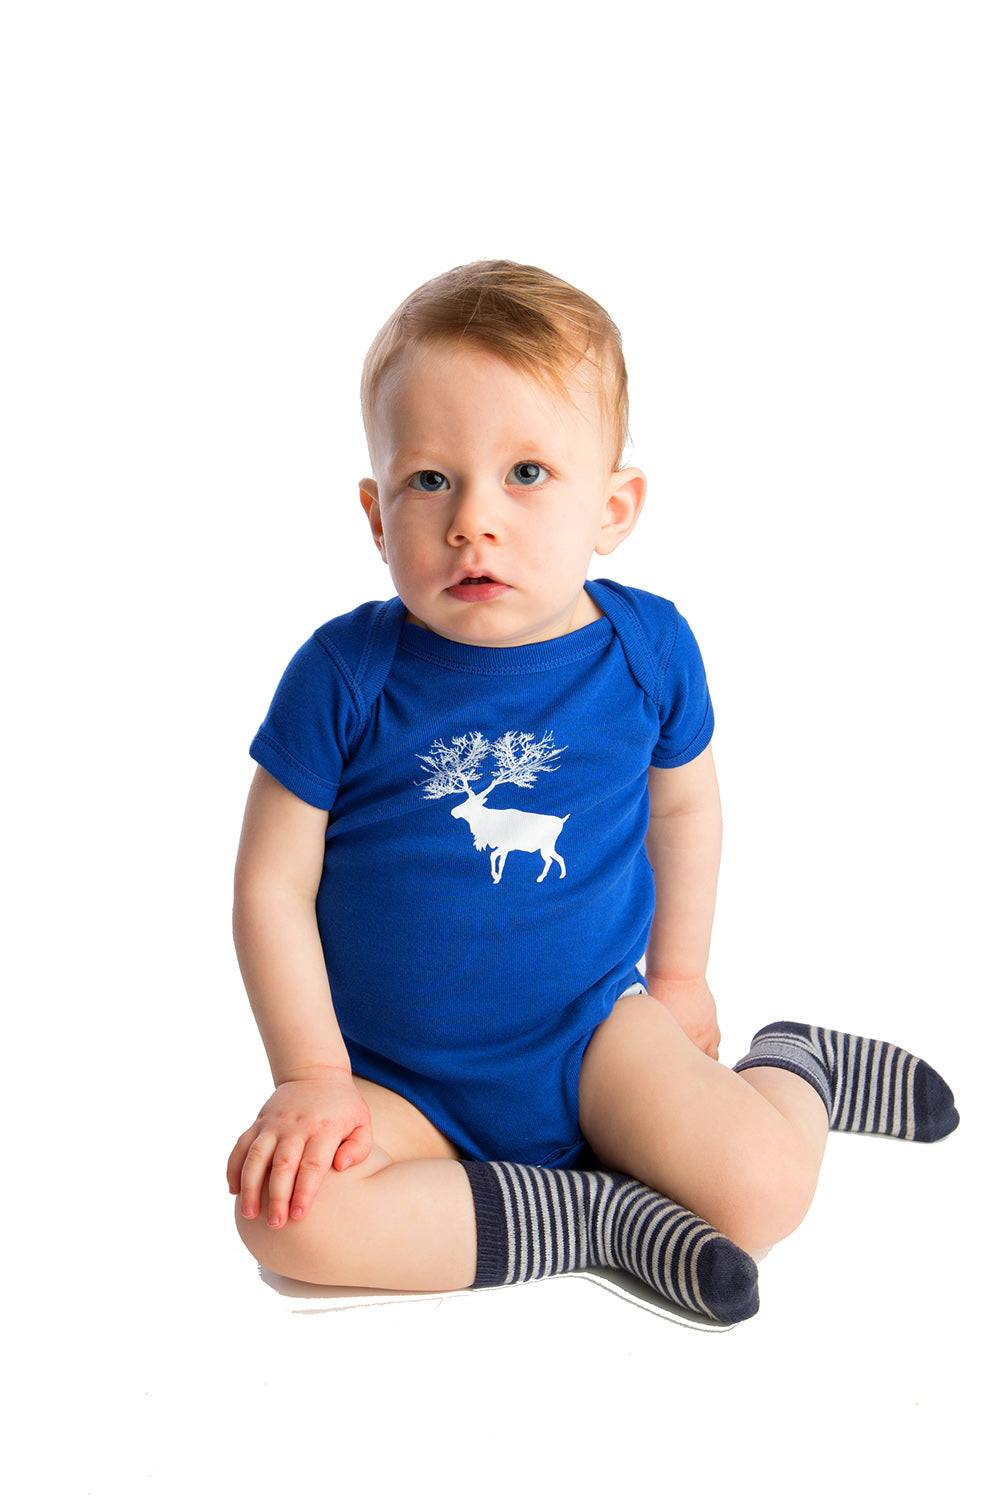 Caribou Baby One-piece Blue shower Gift ideas Boy